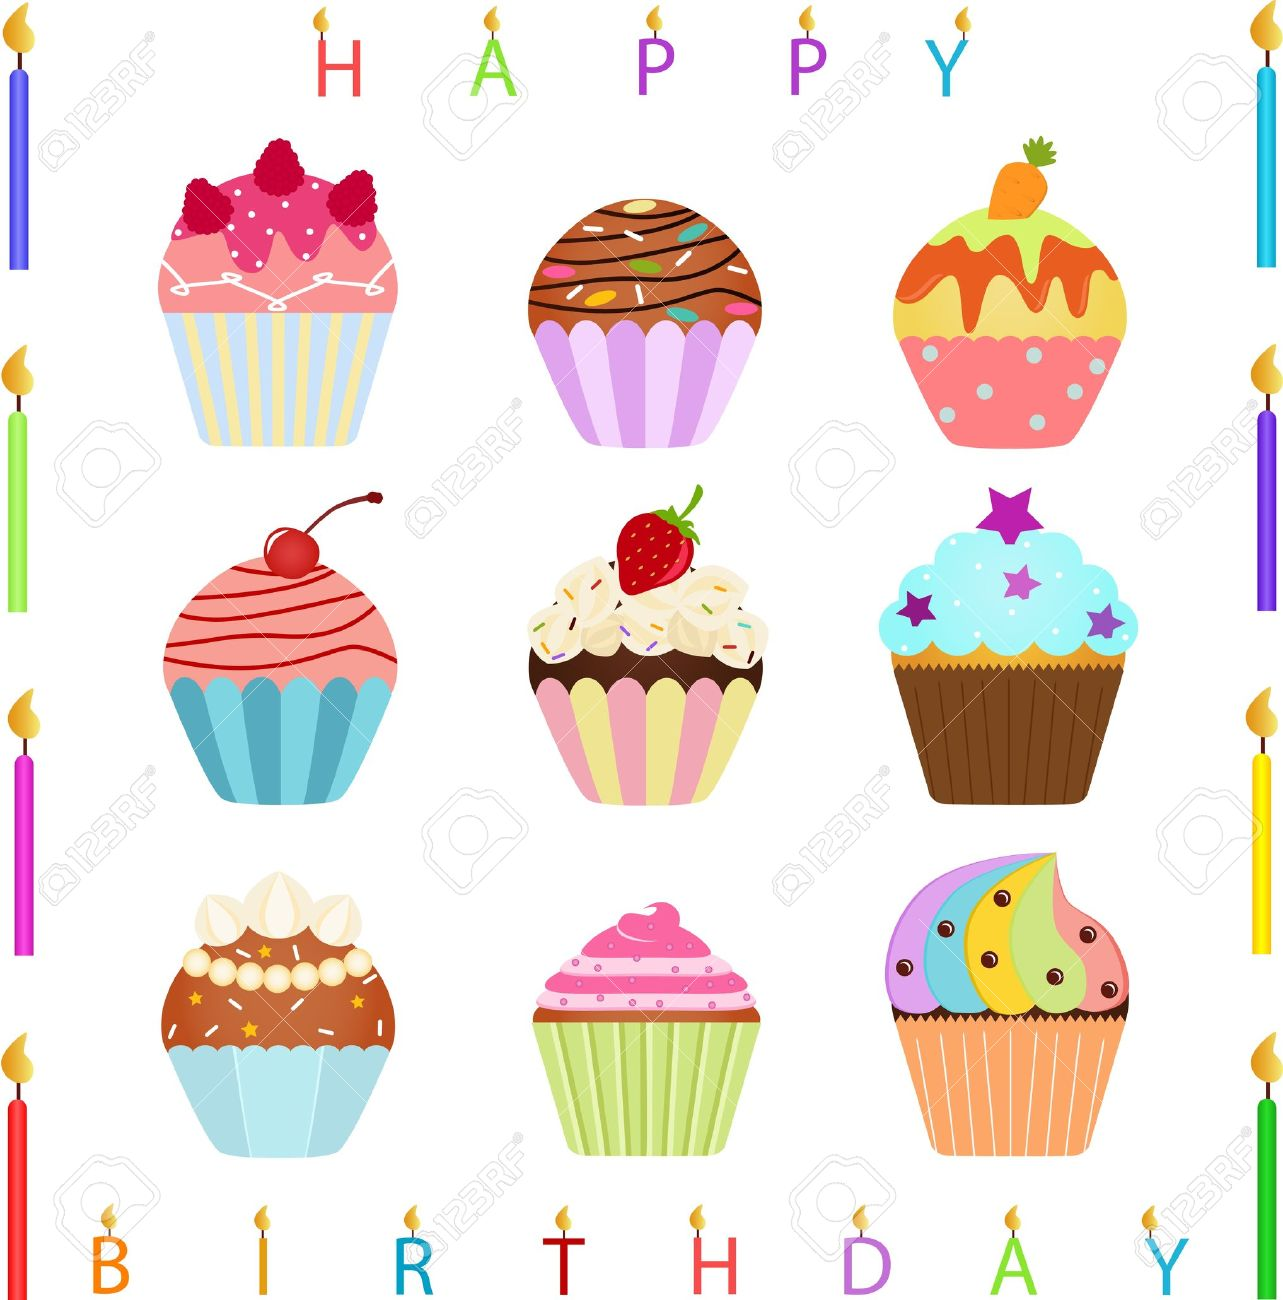 vector Icons   Cute Cupcake with different toppings and Happy Birthday Candles Stock Vector - 14486740